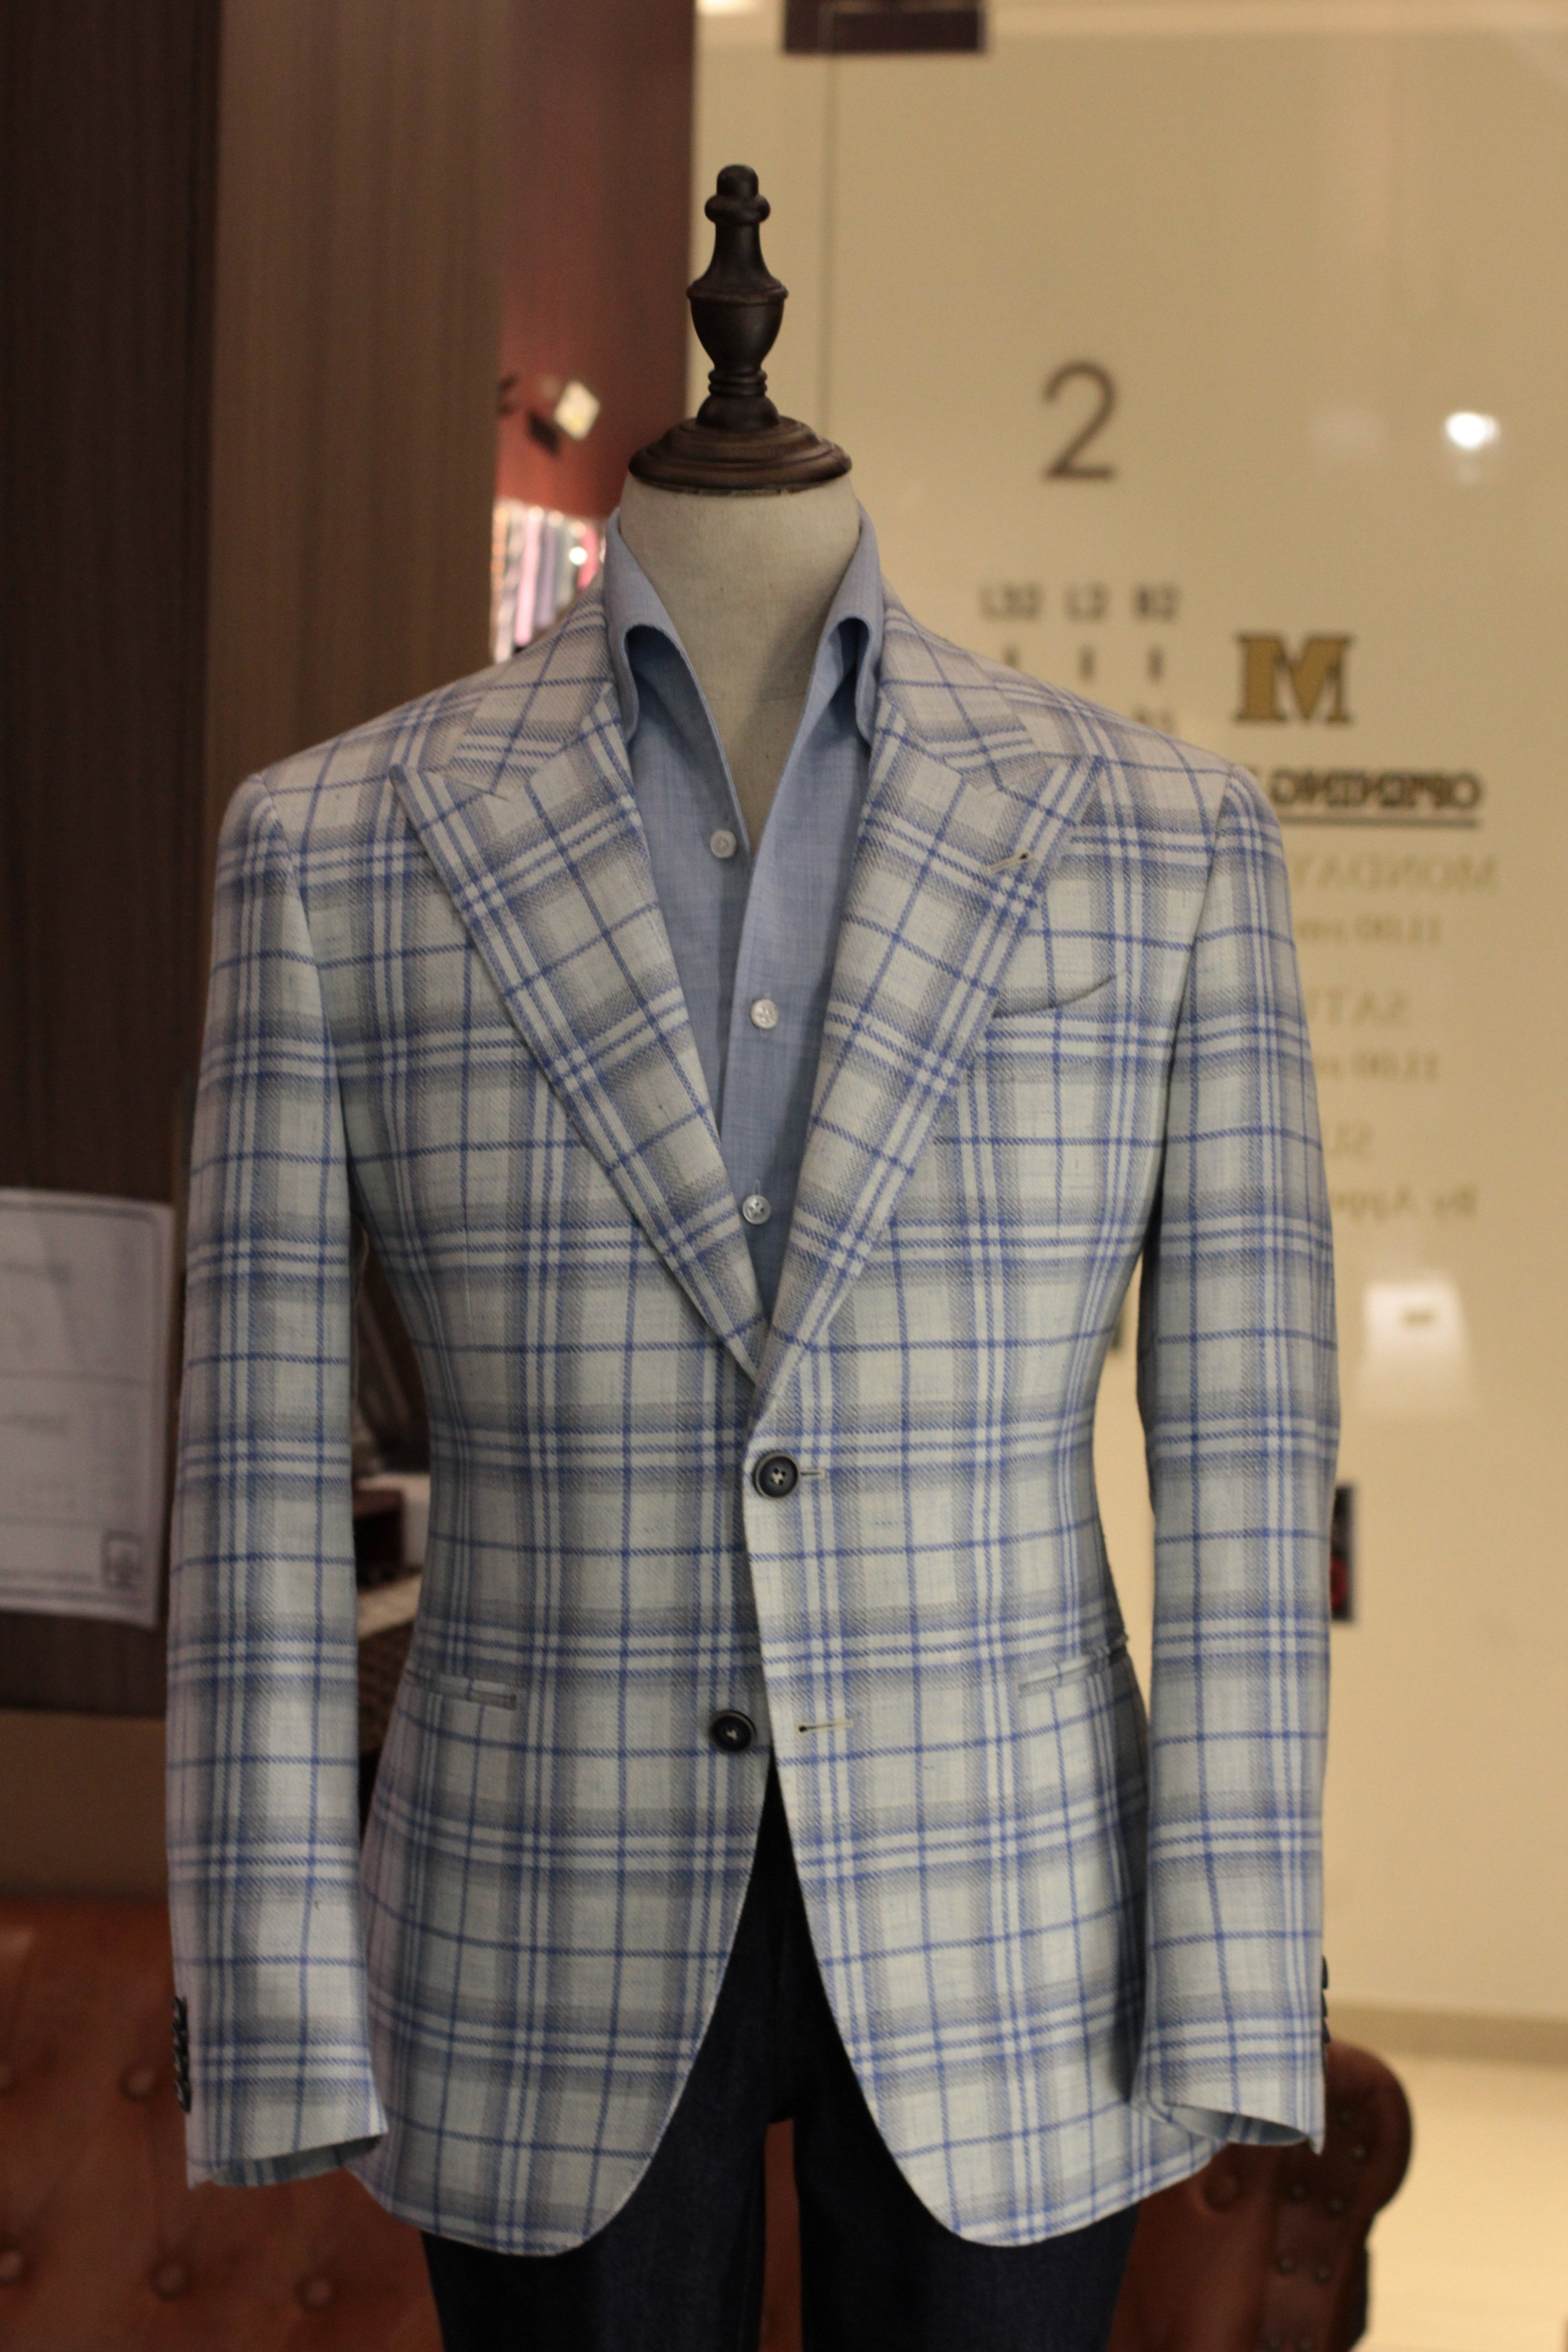 Mr Speckless   Tailor Made Suits   Made Suits Stylbiella looks front back.JPG